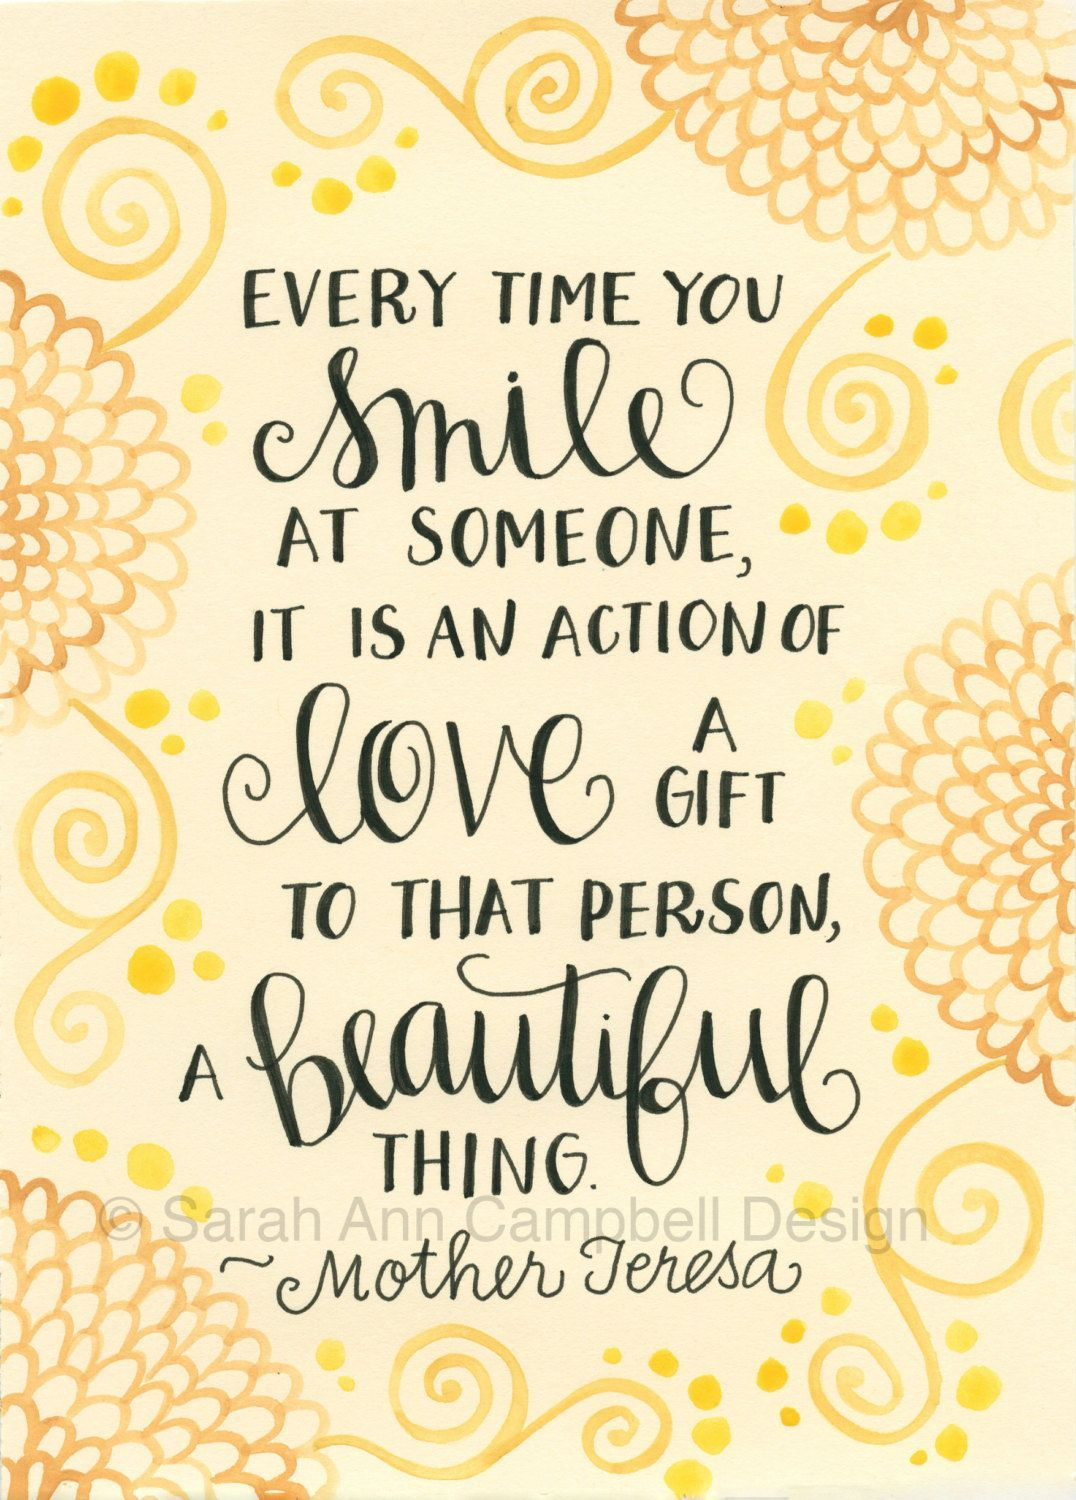 Favorite Positive Quotes Keep Smiling Inspiration  Pinterest  Inspirational Mother